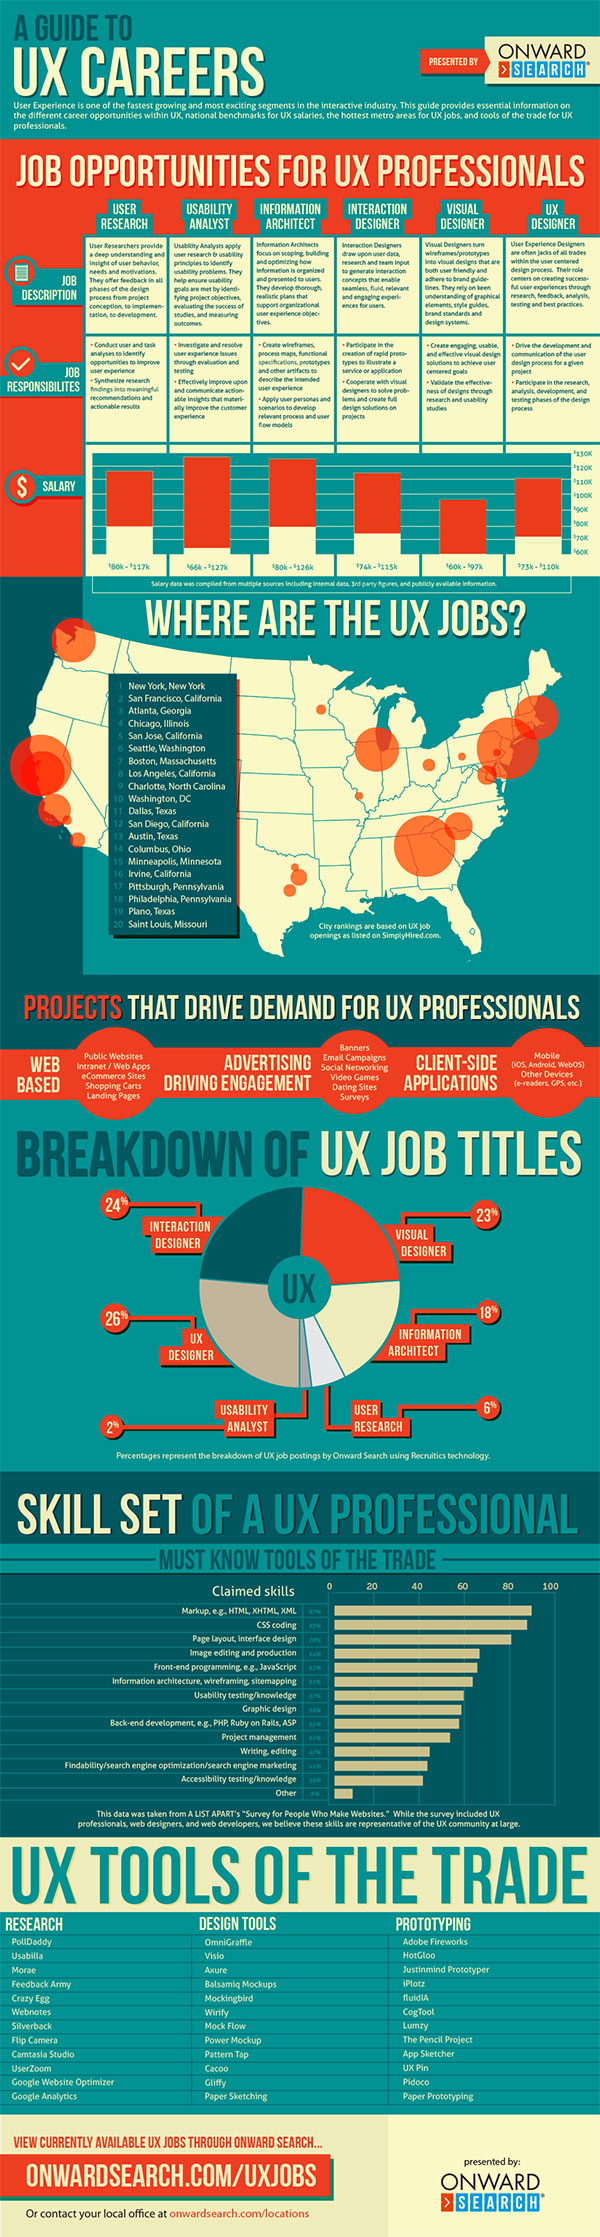 6 Cool Ux Careers You May Have Never Considered Infographic Impact